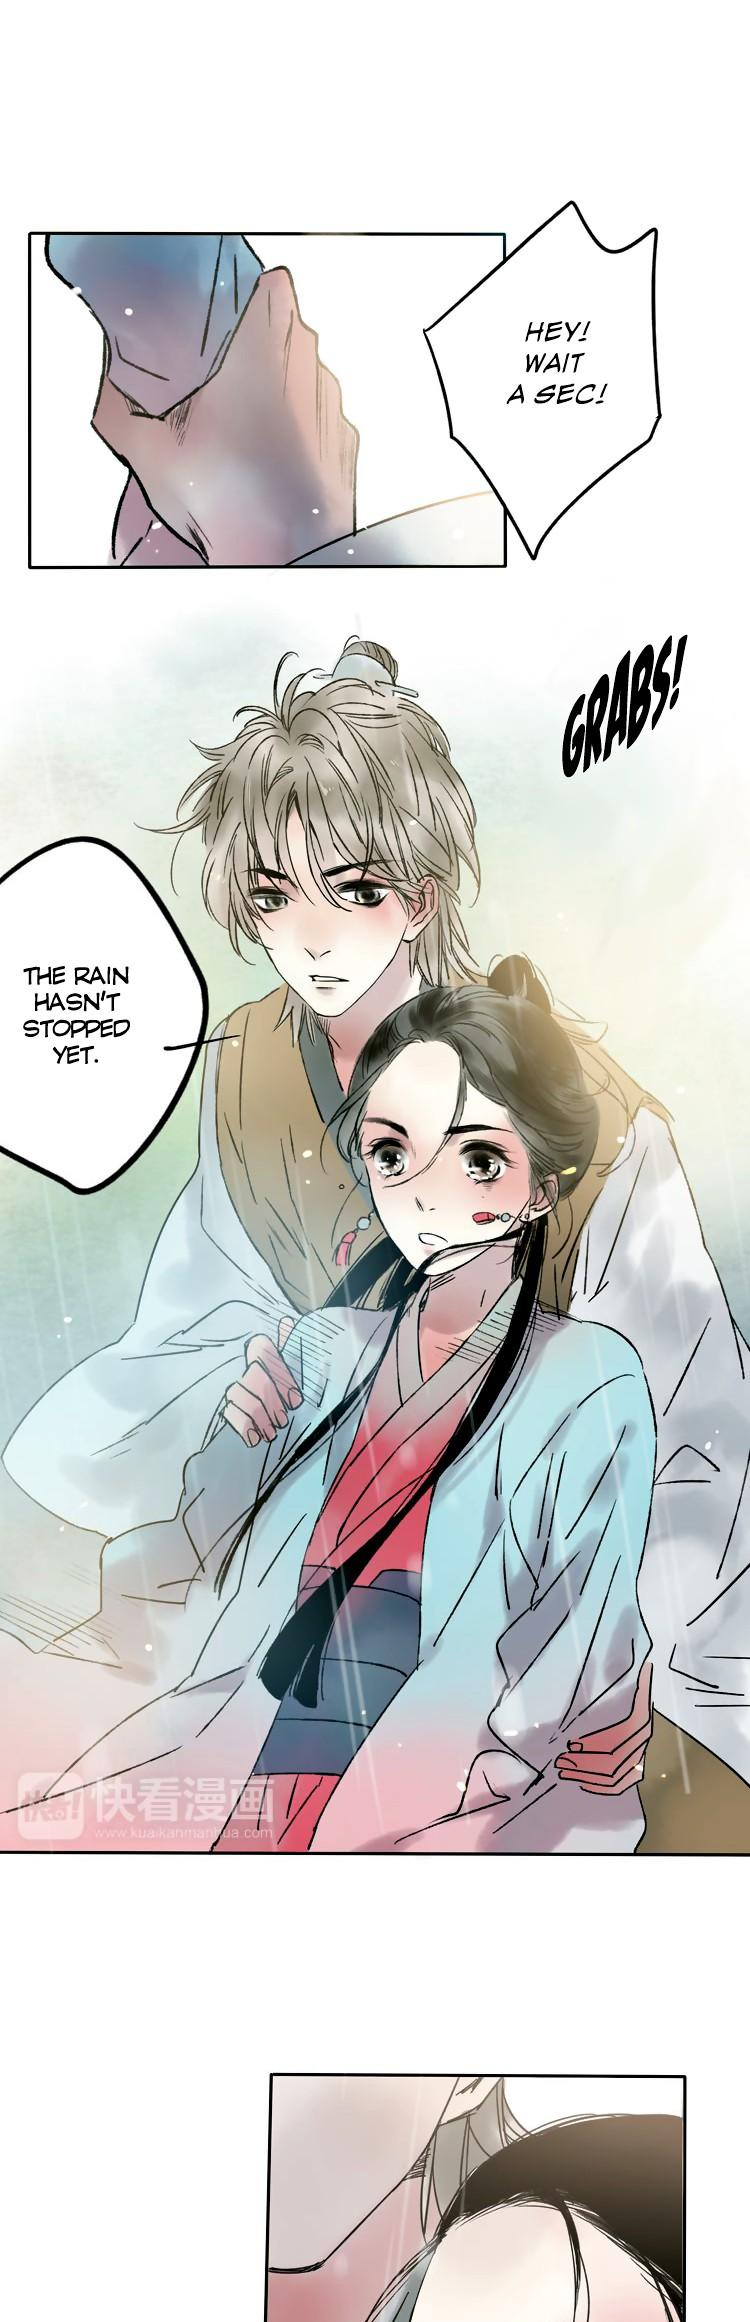 Thousand Endless Rains from Faraway Mountains - chapter 8 - #1